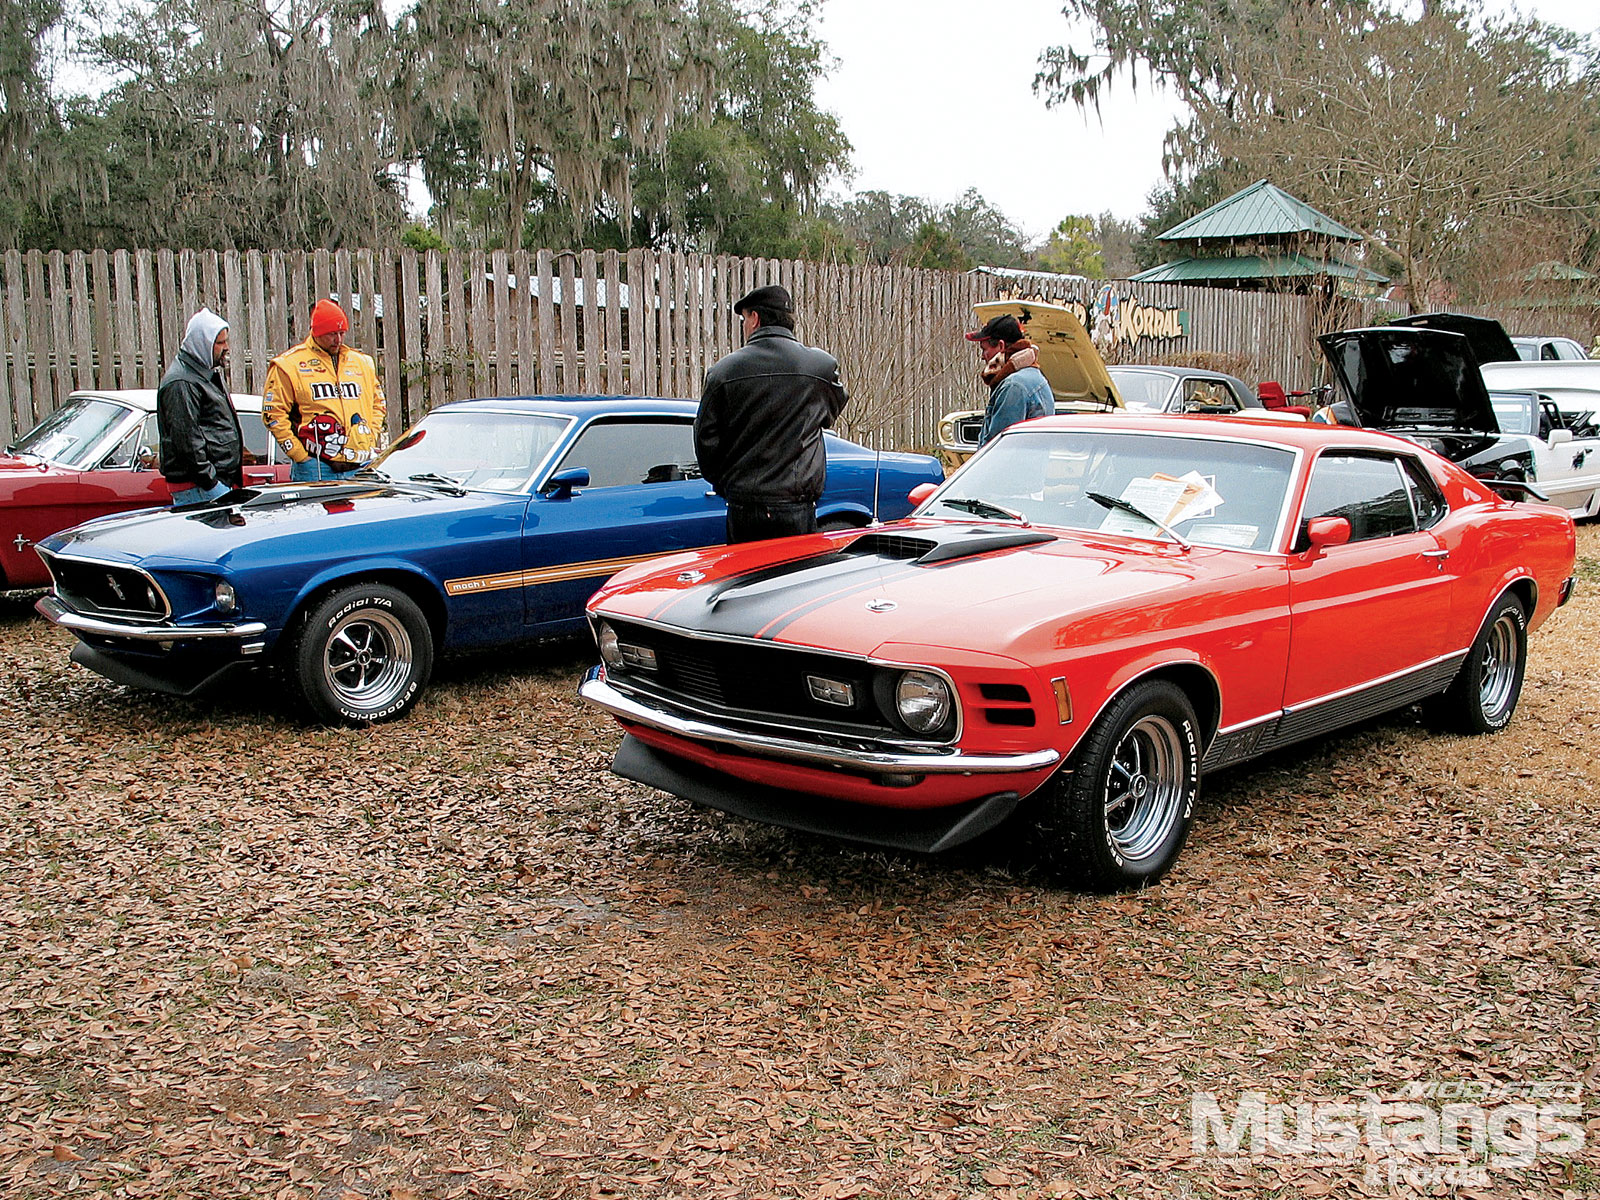 16Th Annual Silver Springs Ford And Mustang Roundup Mustang Roundup